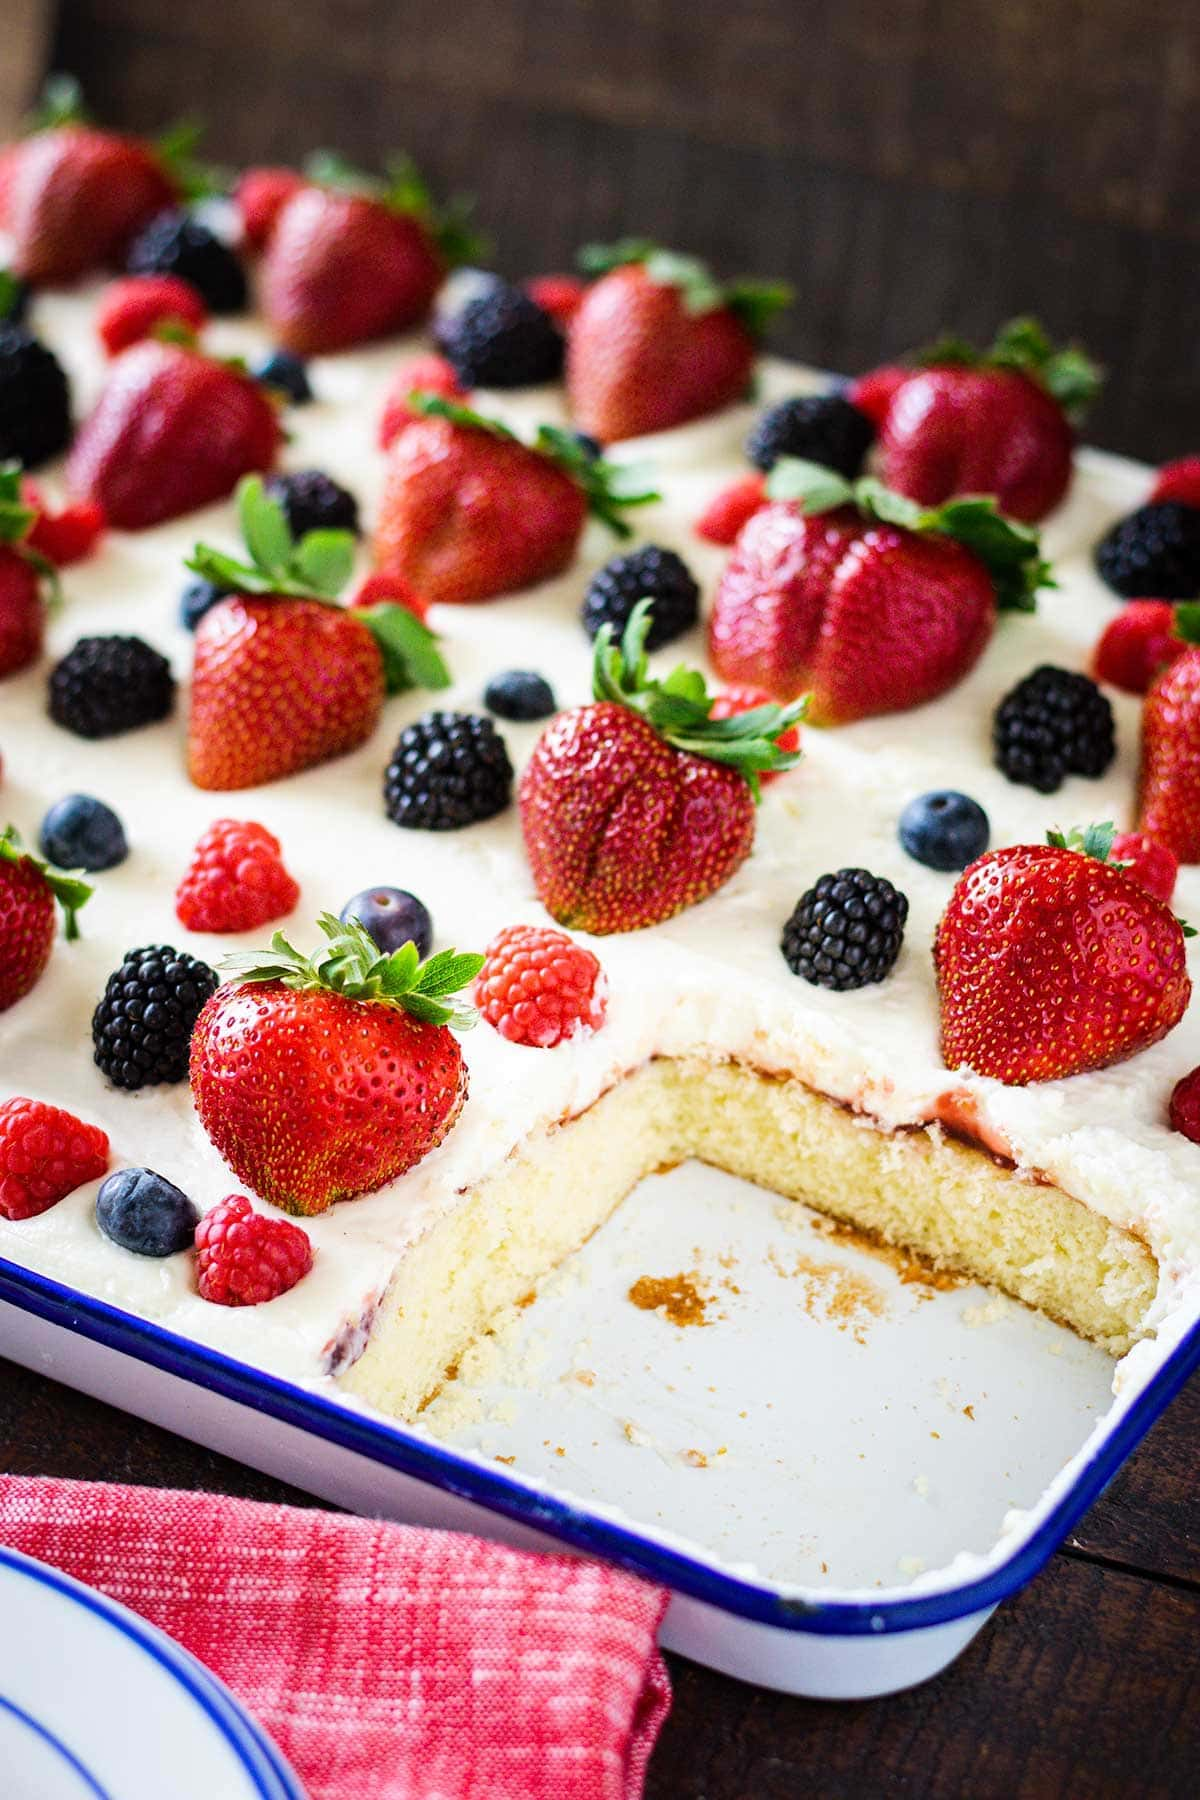 Chantilly sheet cake topped with fresh strawberries, raspberries, blueberries and blackberries. Set in a sheer pan with a slice remove showing the sponge cake.